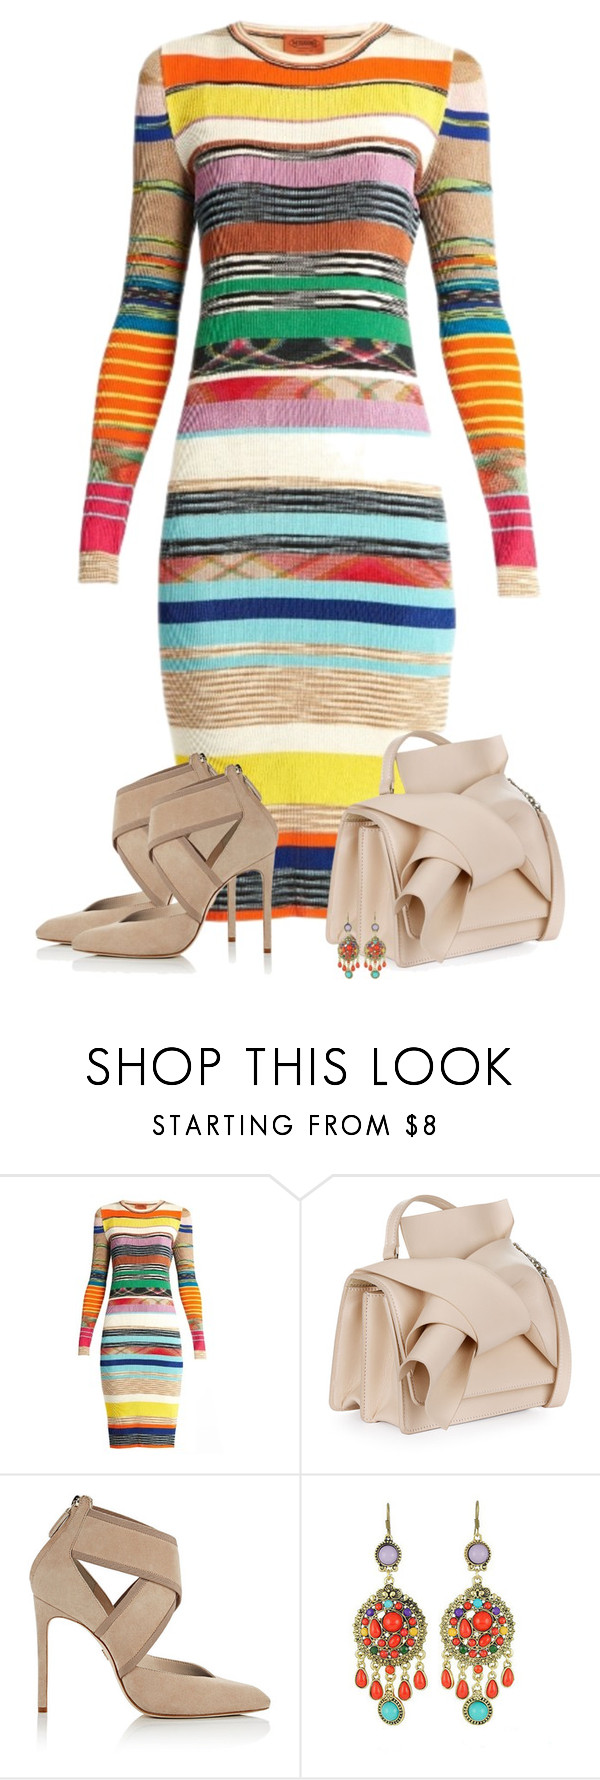 """""""The Featured Item Contest"""" by barbarapoole ❤ liked on Polyvore featuring Missoni, N°21, Lanvin and WithChic"""